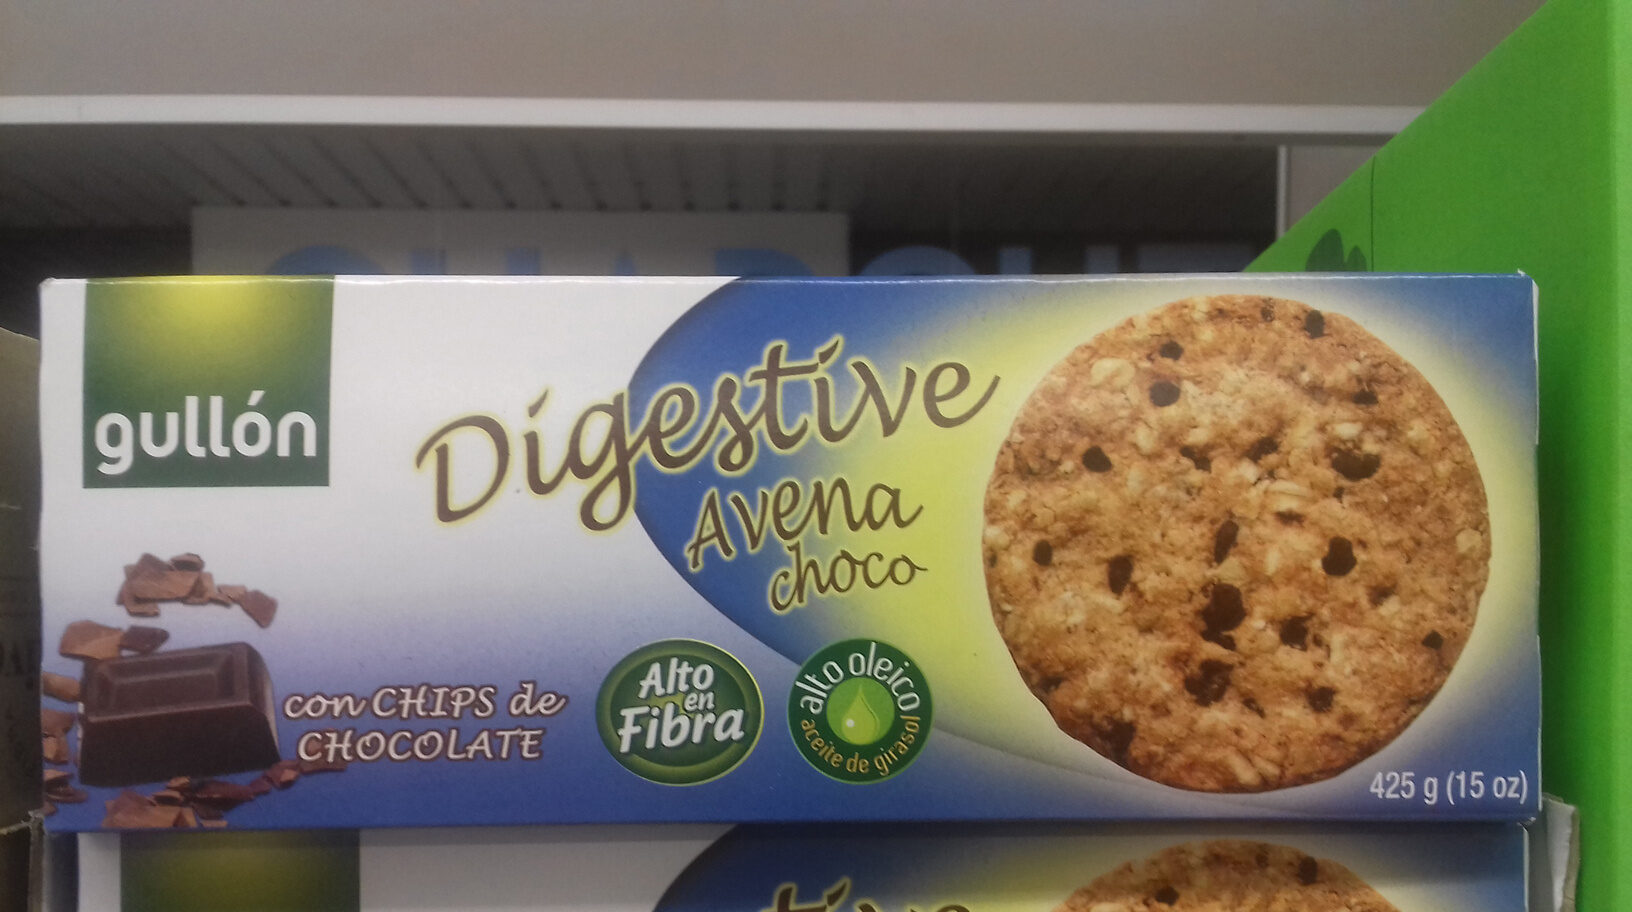 Galletas digestive avena choco - Product - en